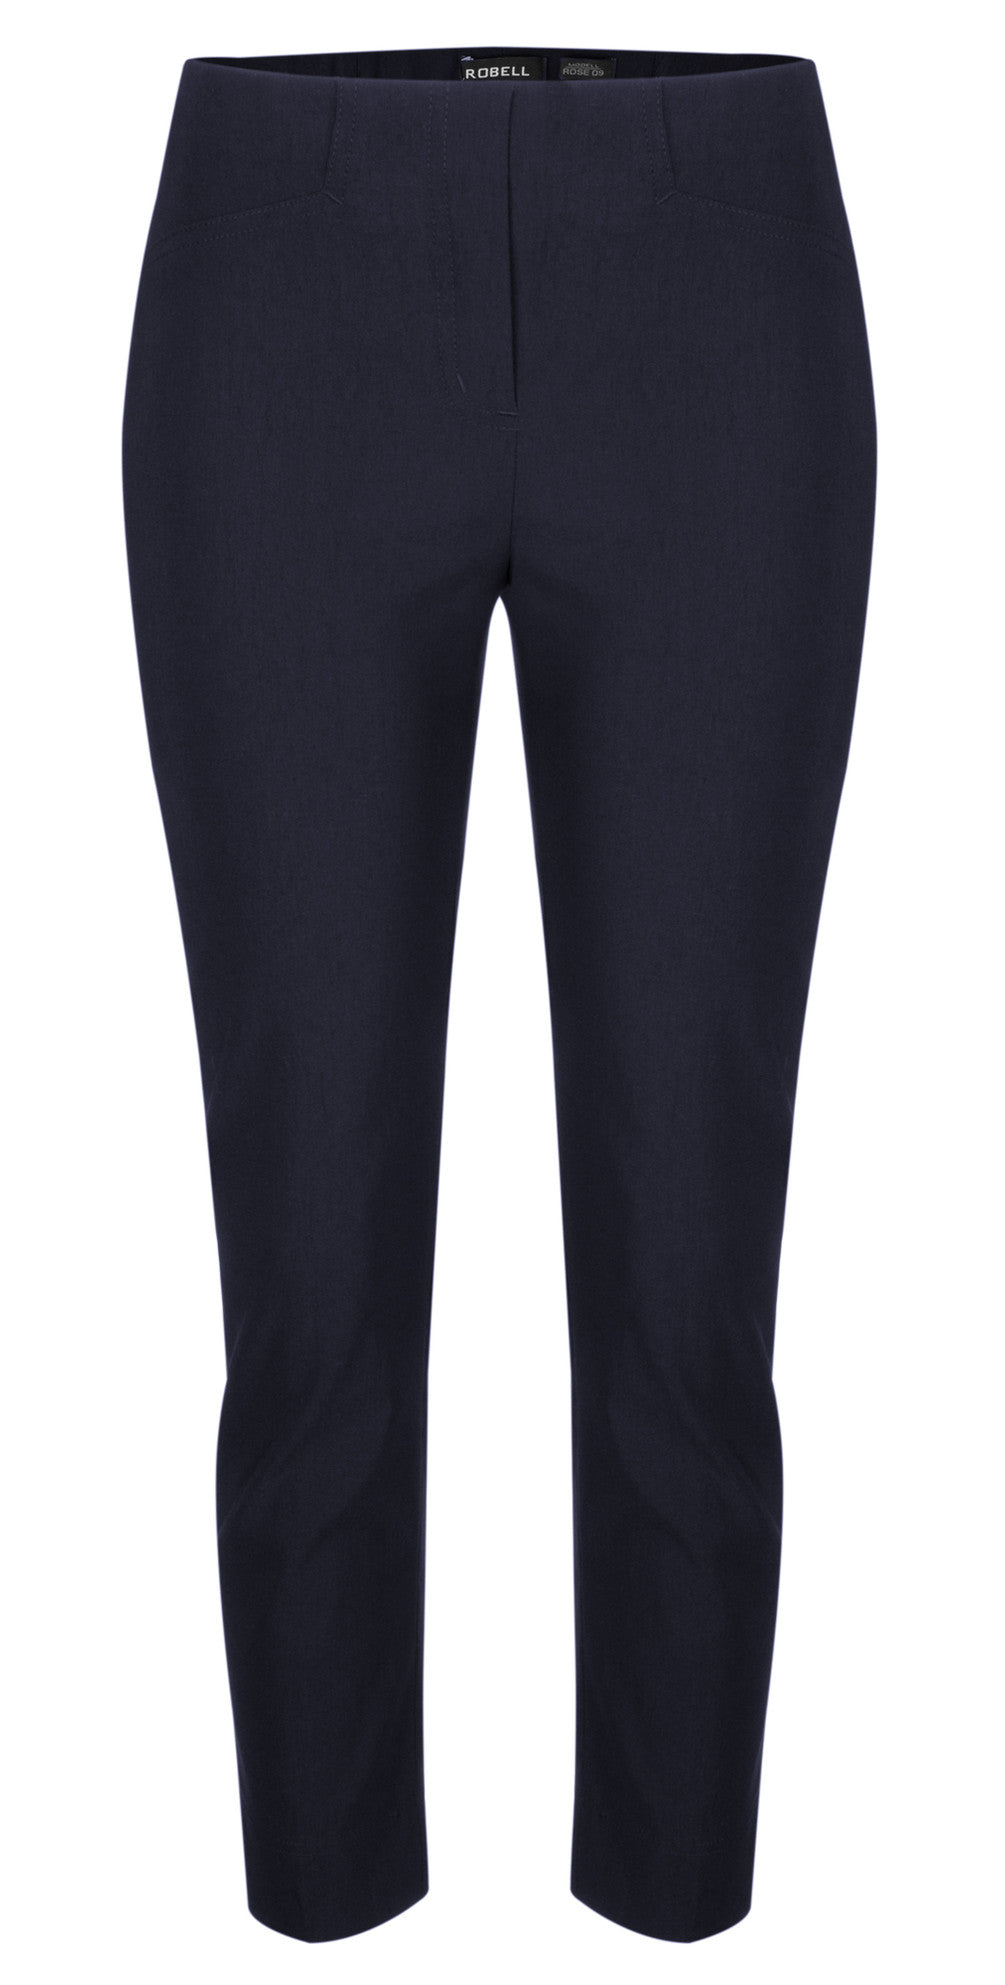 Robell Rose 09 Navy Blue Ankle Trousers | The LBD Boutique & Trouser Shop